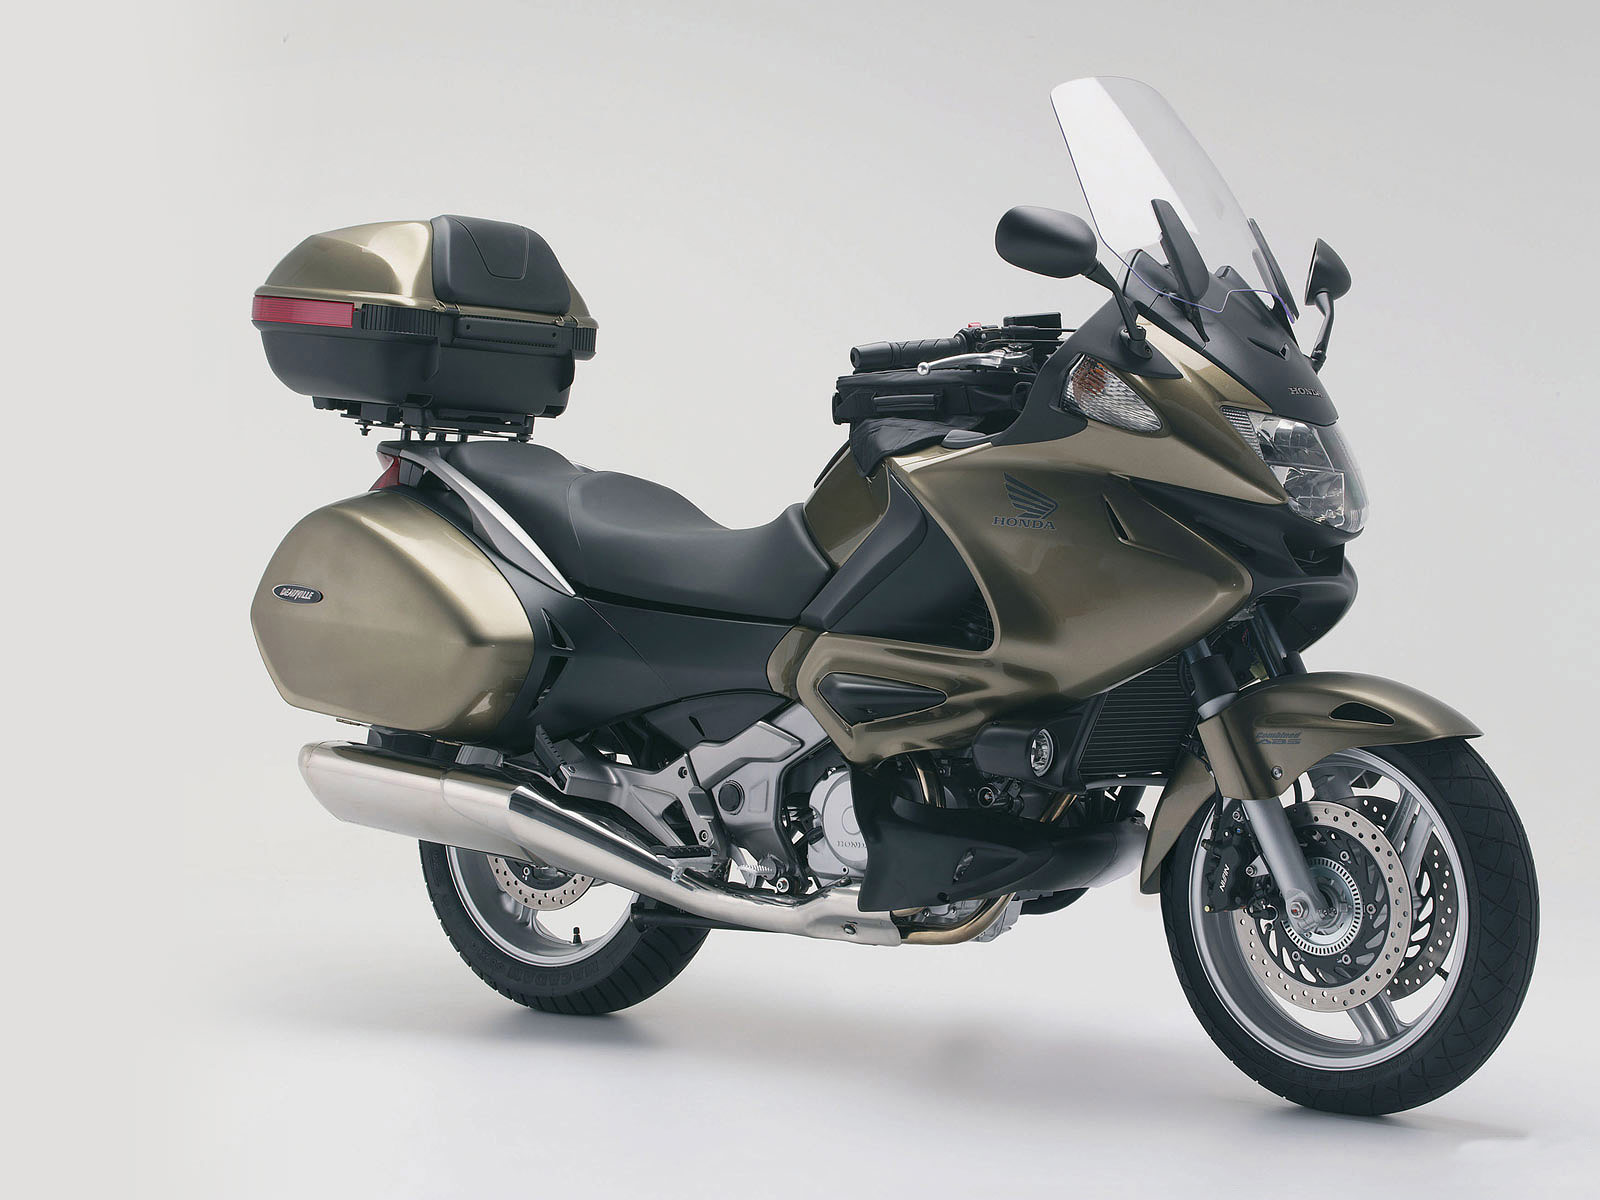 Who Makes Honda >> 2006 HONDA Deauville motorcycle insurance info, wallpaper